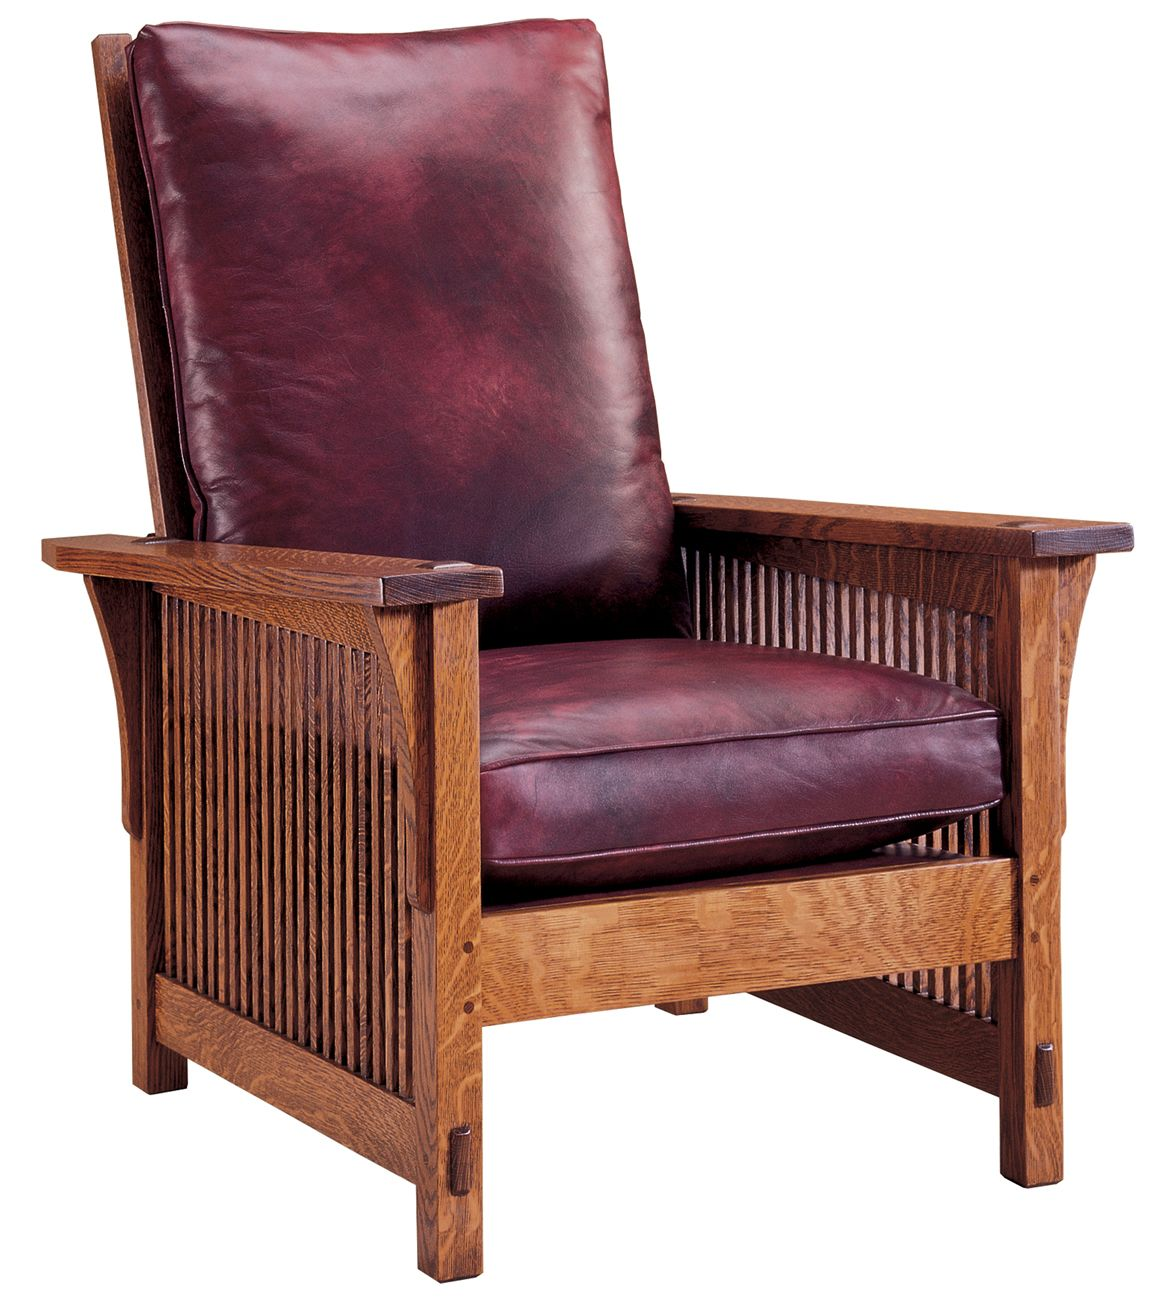 OurProducts_Detailsu2014Stickley Furniture, Since 1900.